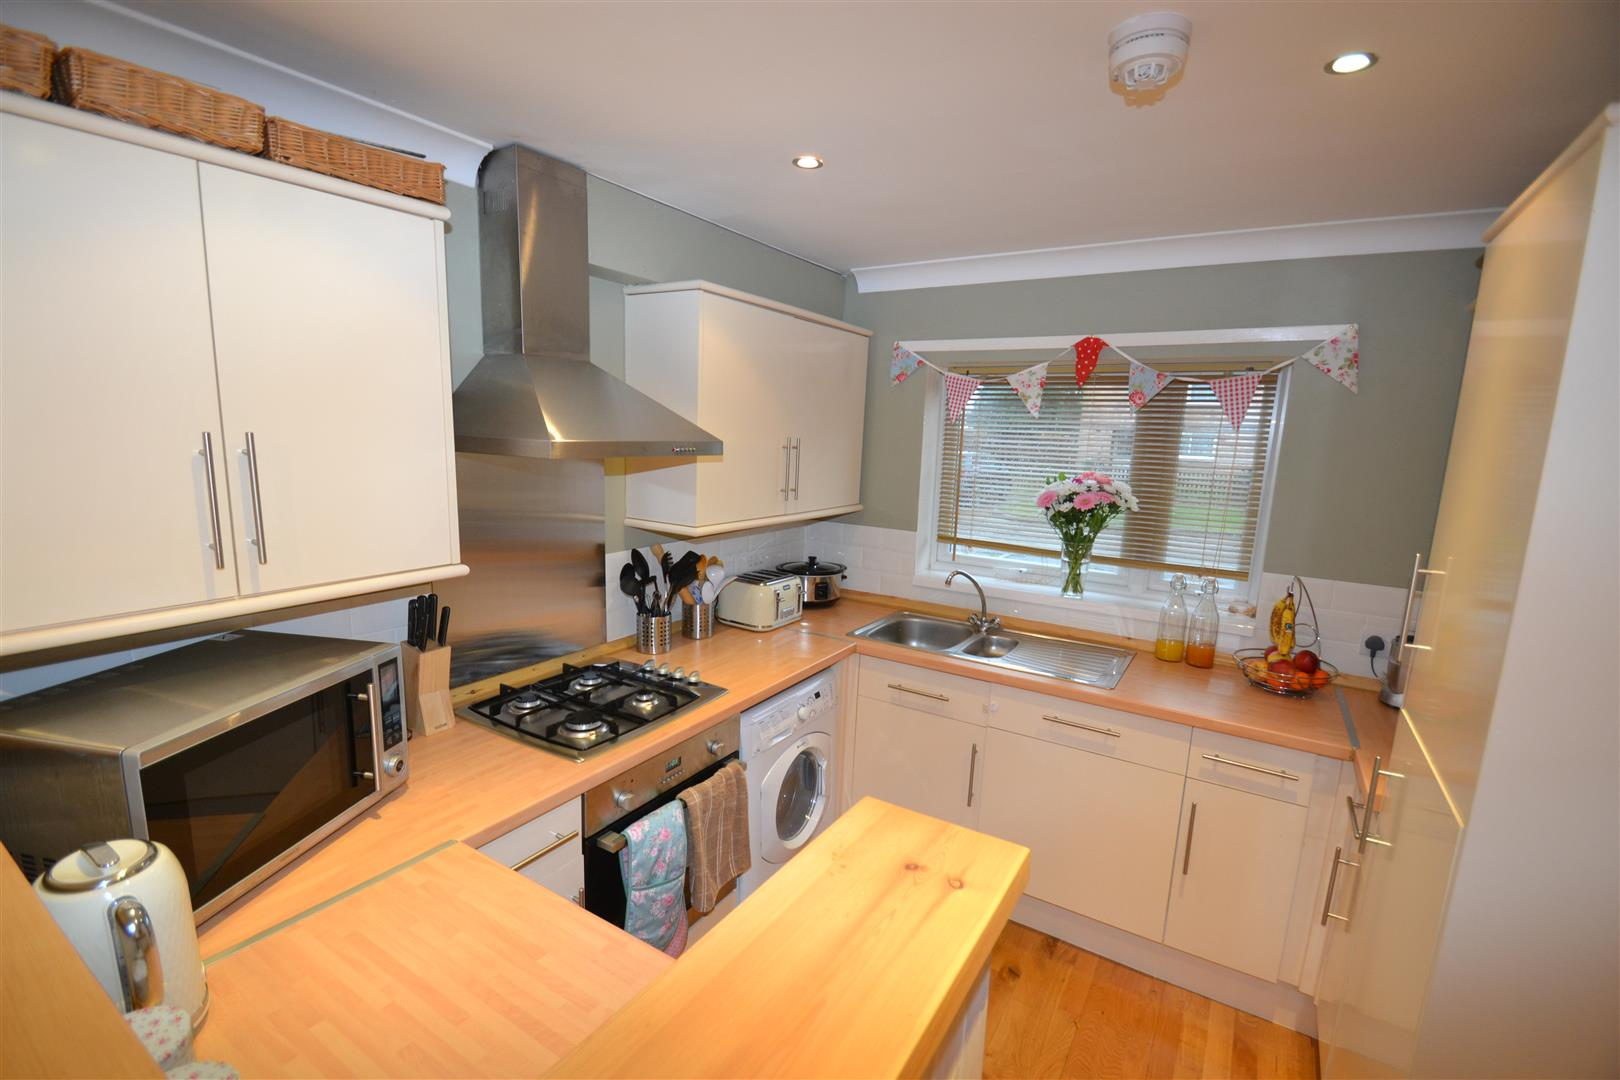 3 Bedrooms House for sale in Chaffinch Way, Horley